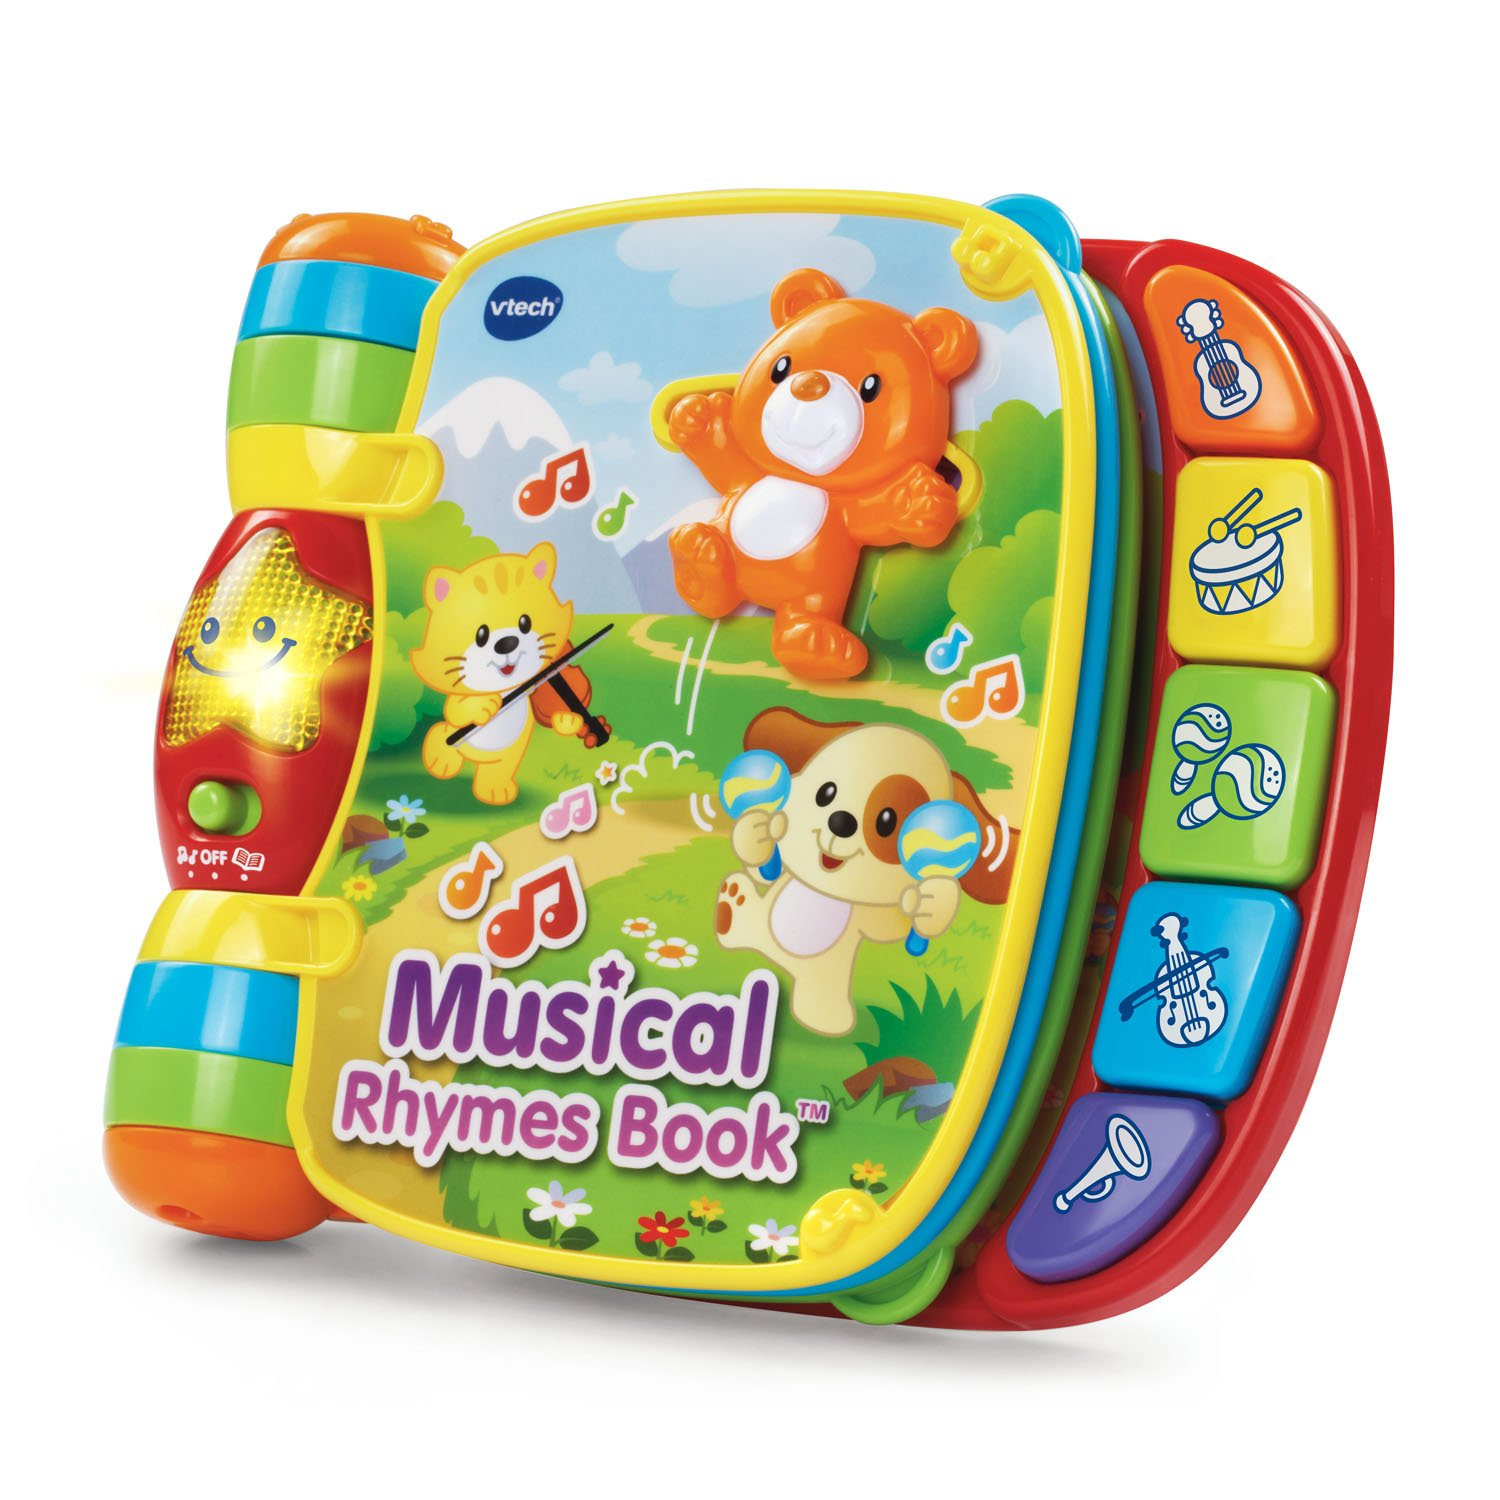 VTech Musical Rhymes Book approx. $13